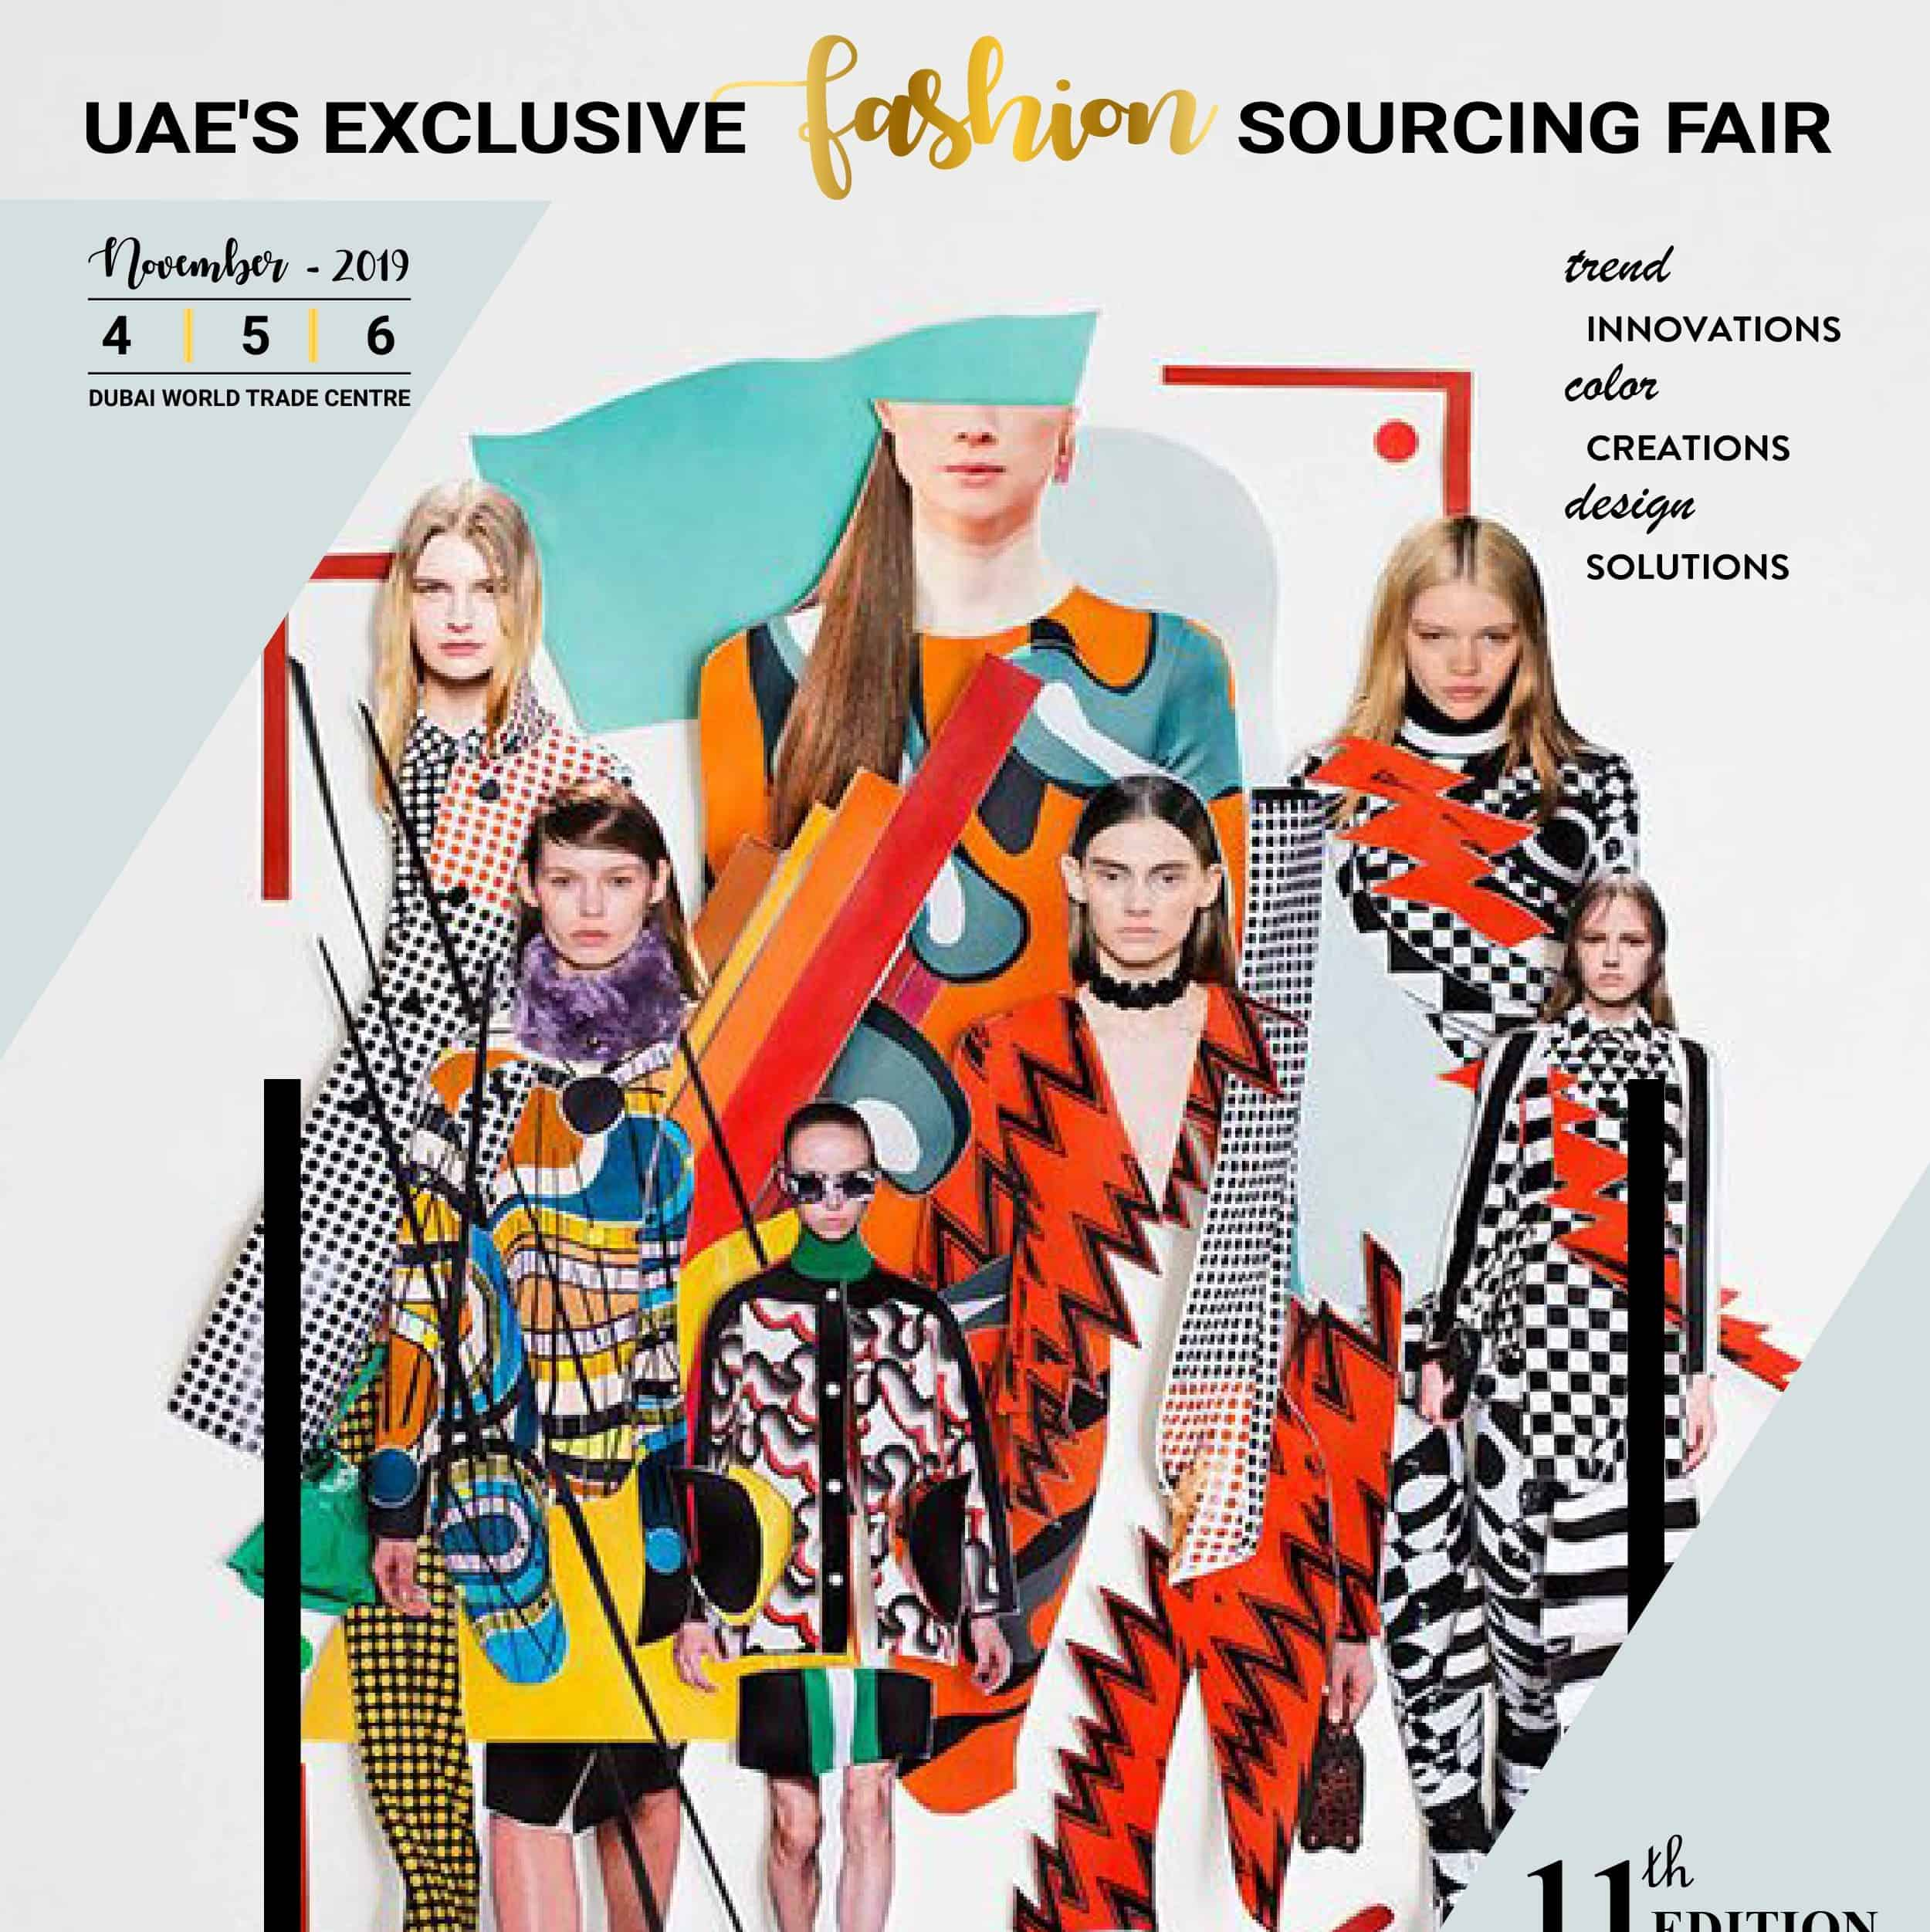 Invitation International Apparel & Textile Fair